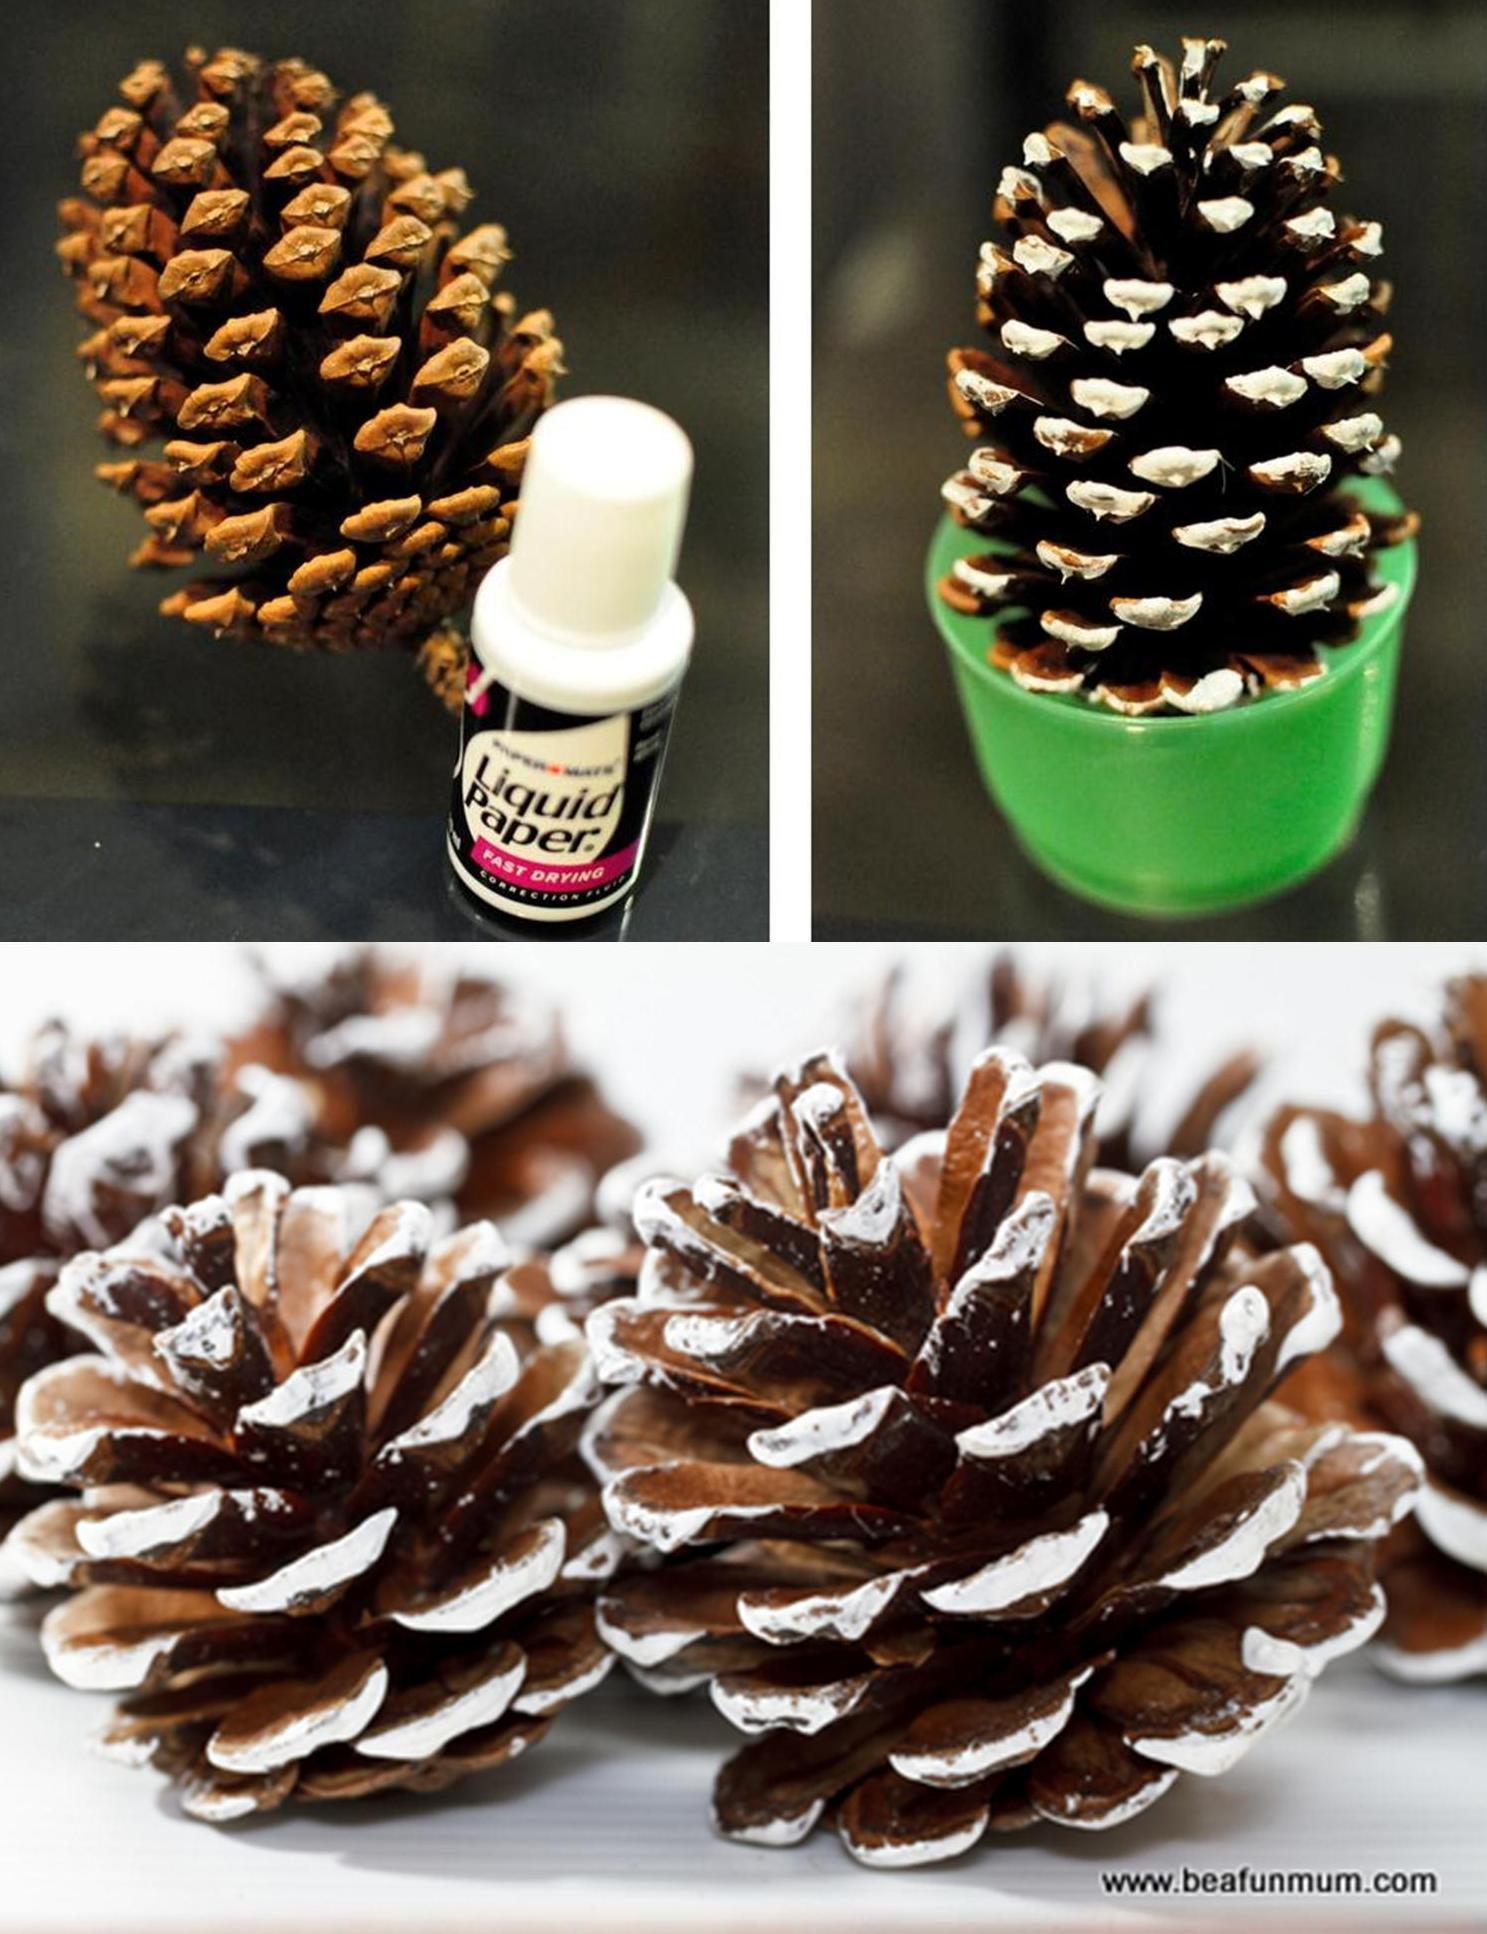 how to clean pine cones from bugs